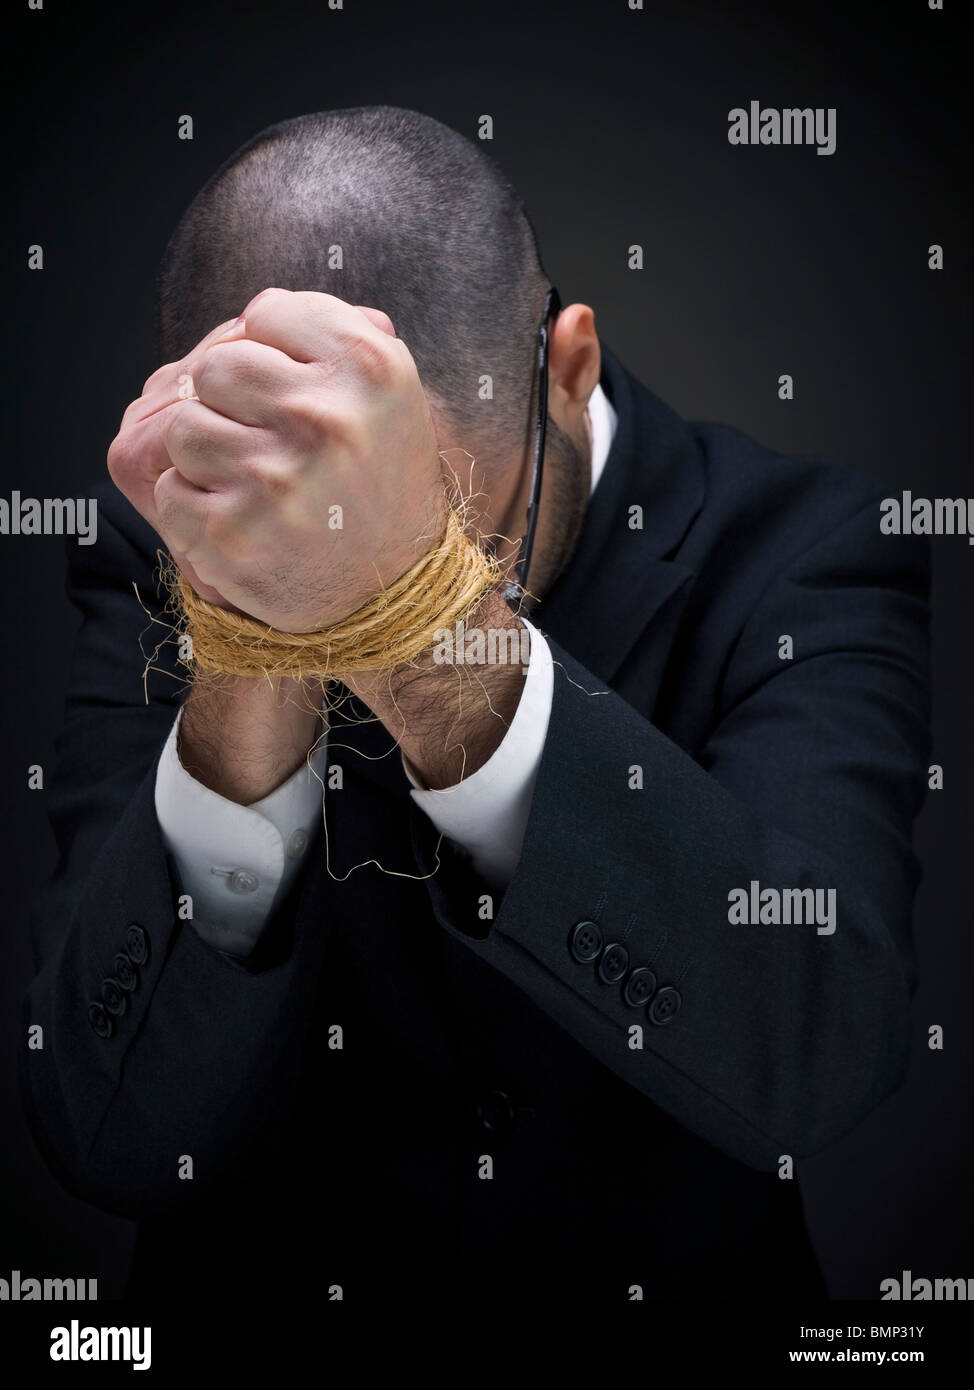 A man on a suit is raising his tied hands. Stock Photo